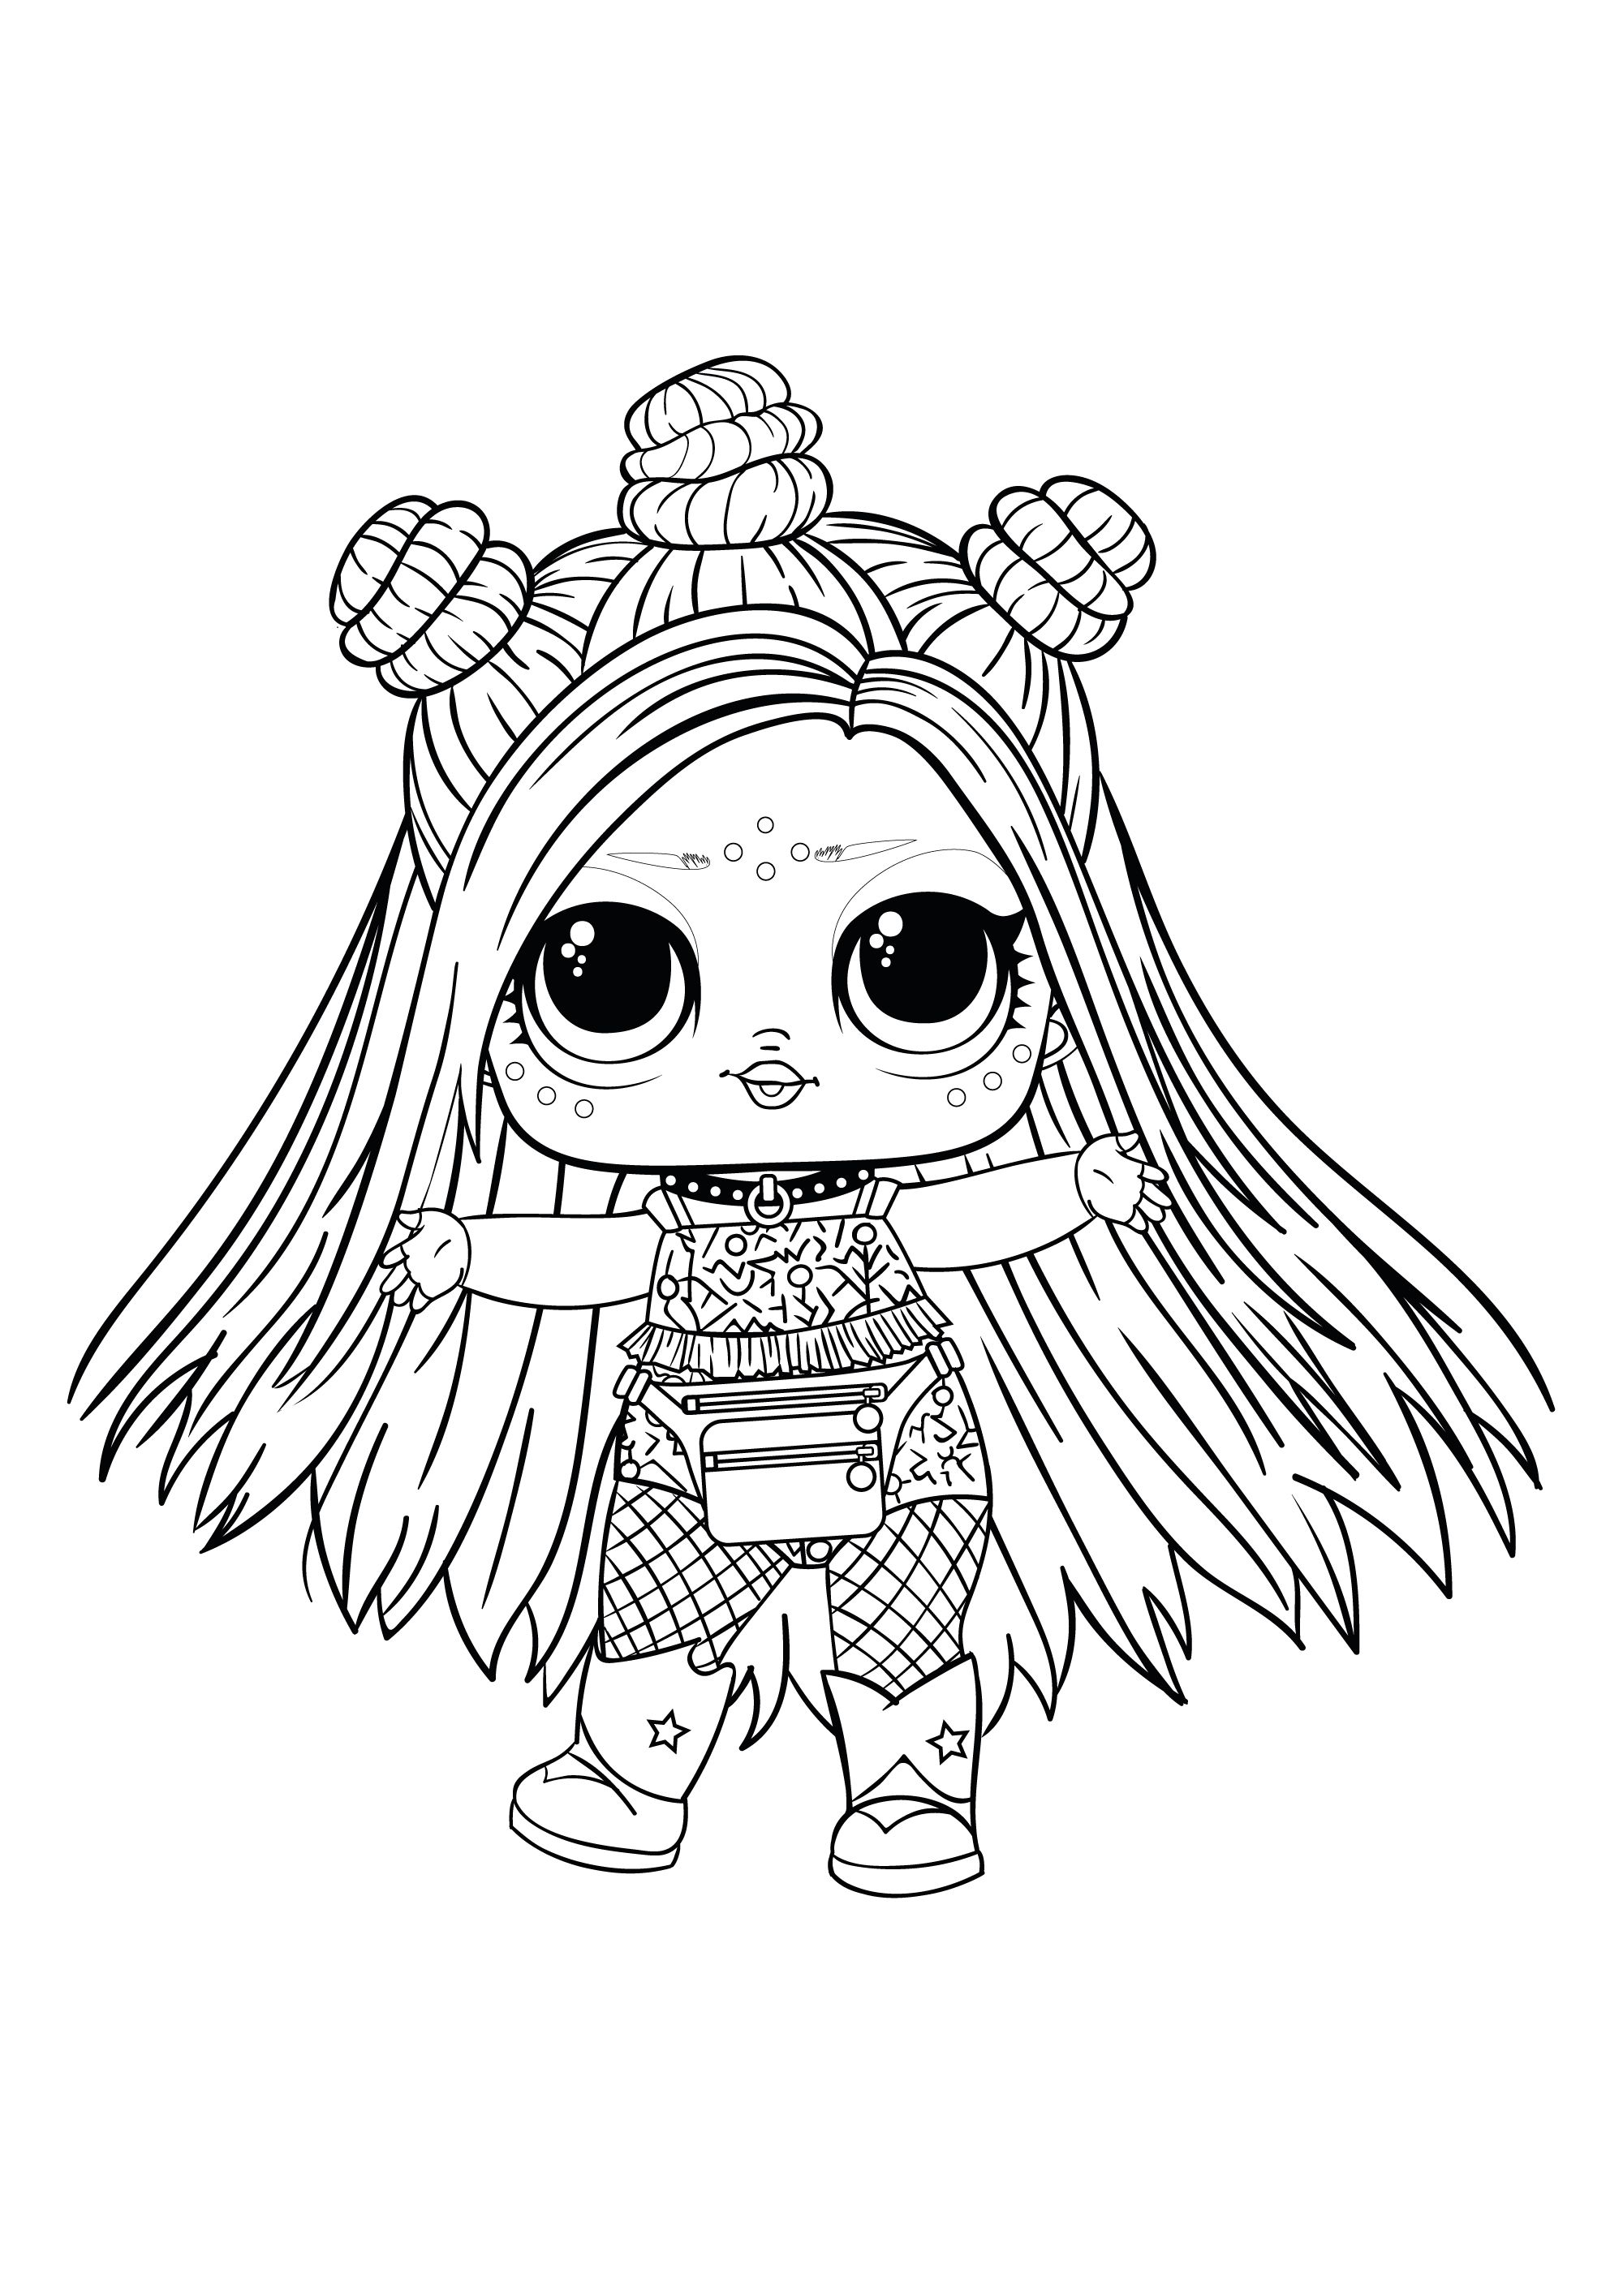 Coloring pages - LOL Surprise Hairgoals and LOL Surprise Boys